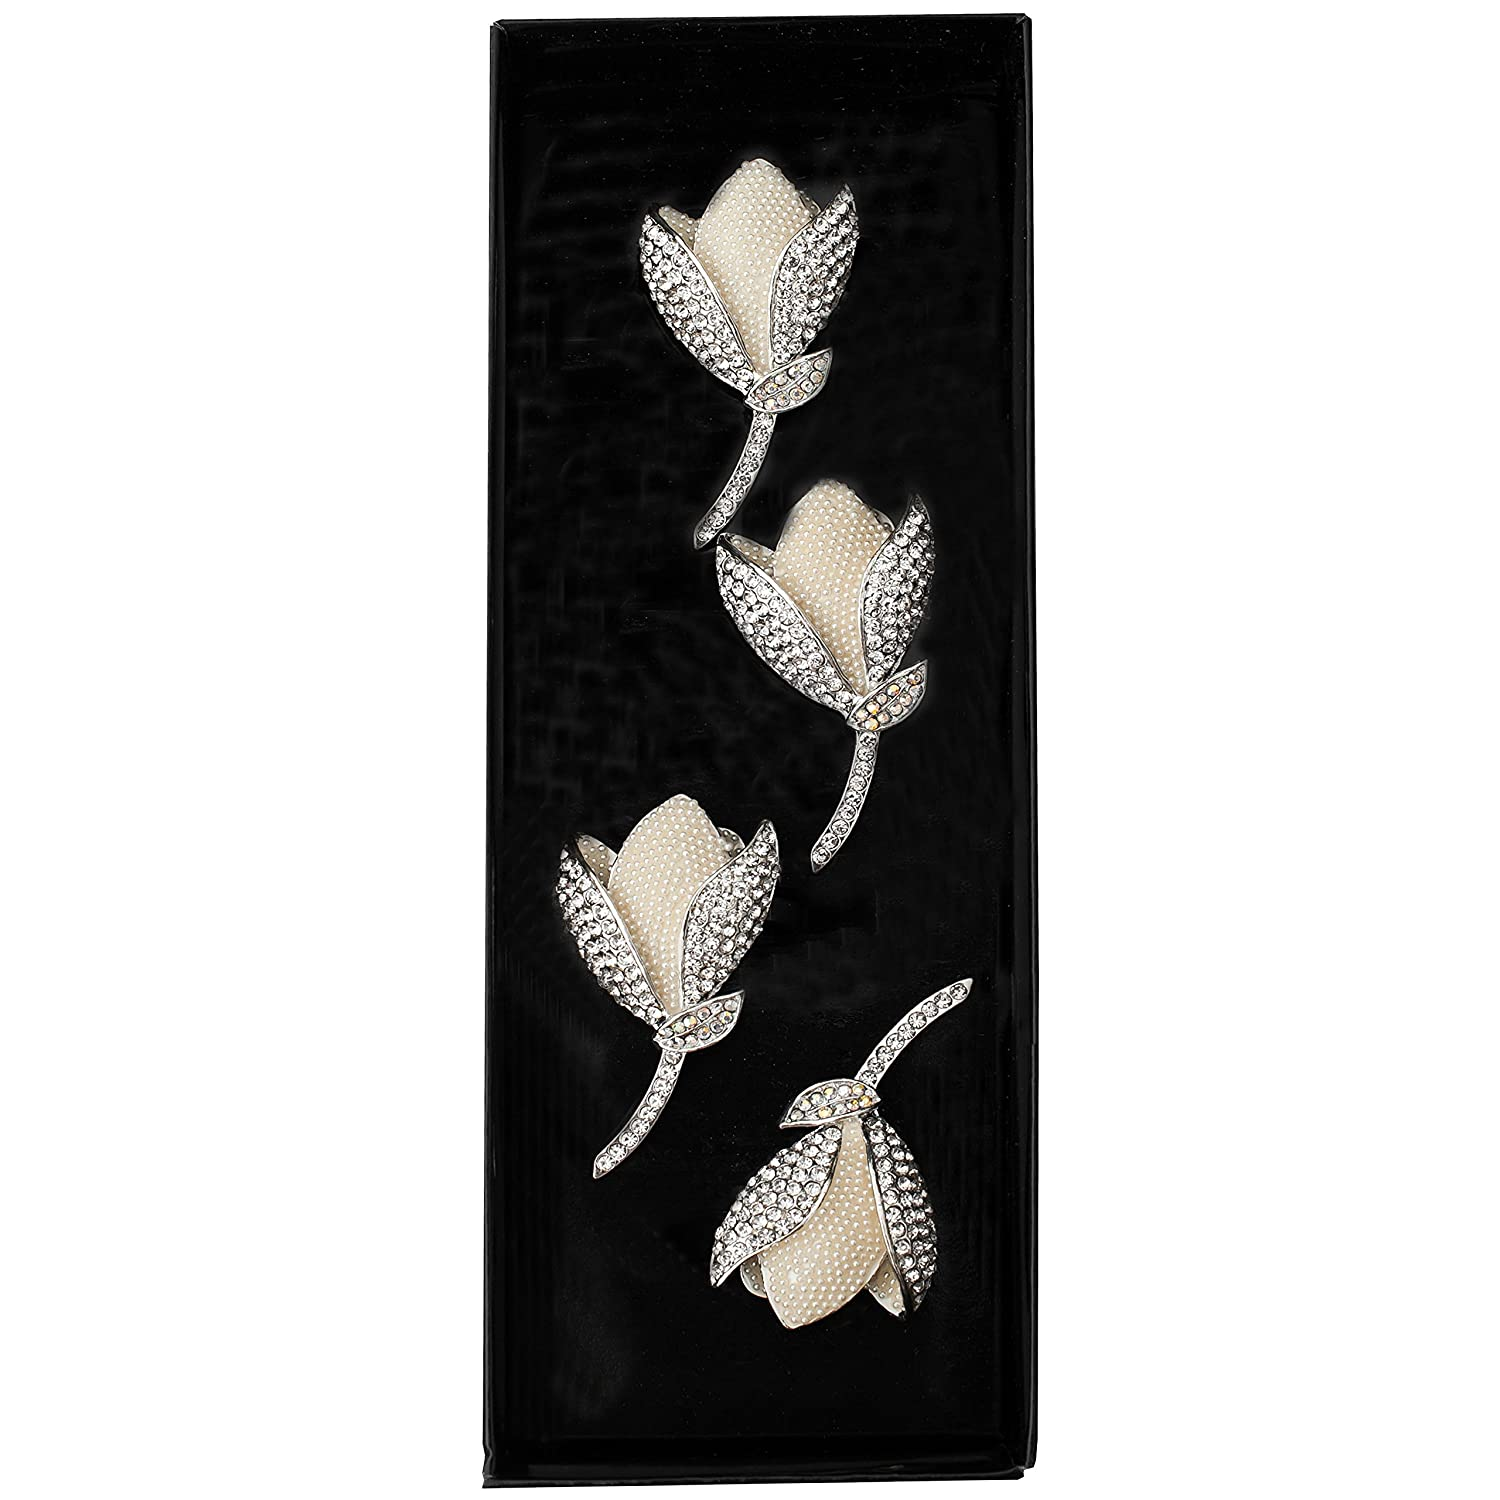 Fancy Tulipe Flower with Crystals Napkin Rings Set of 4